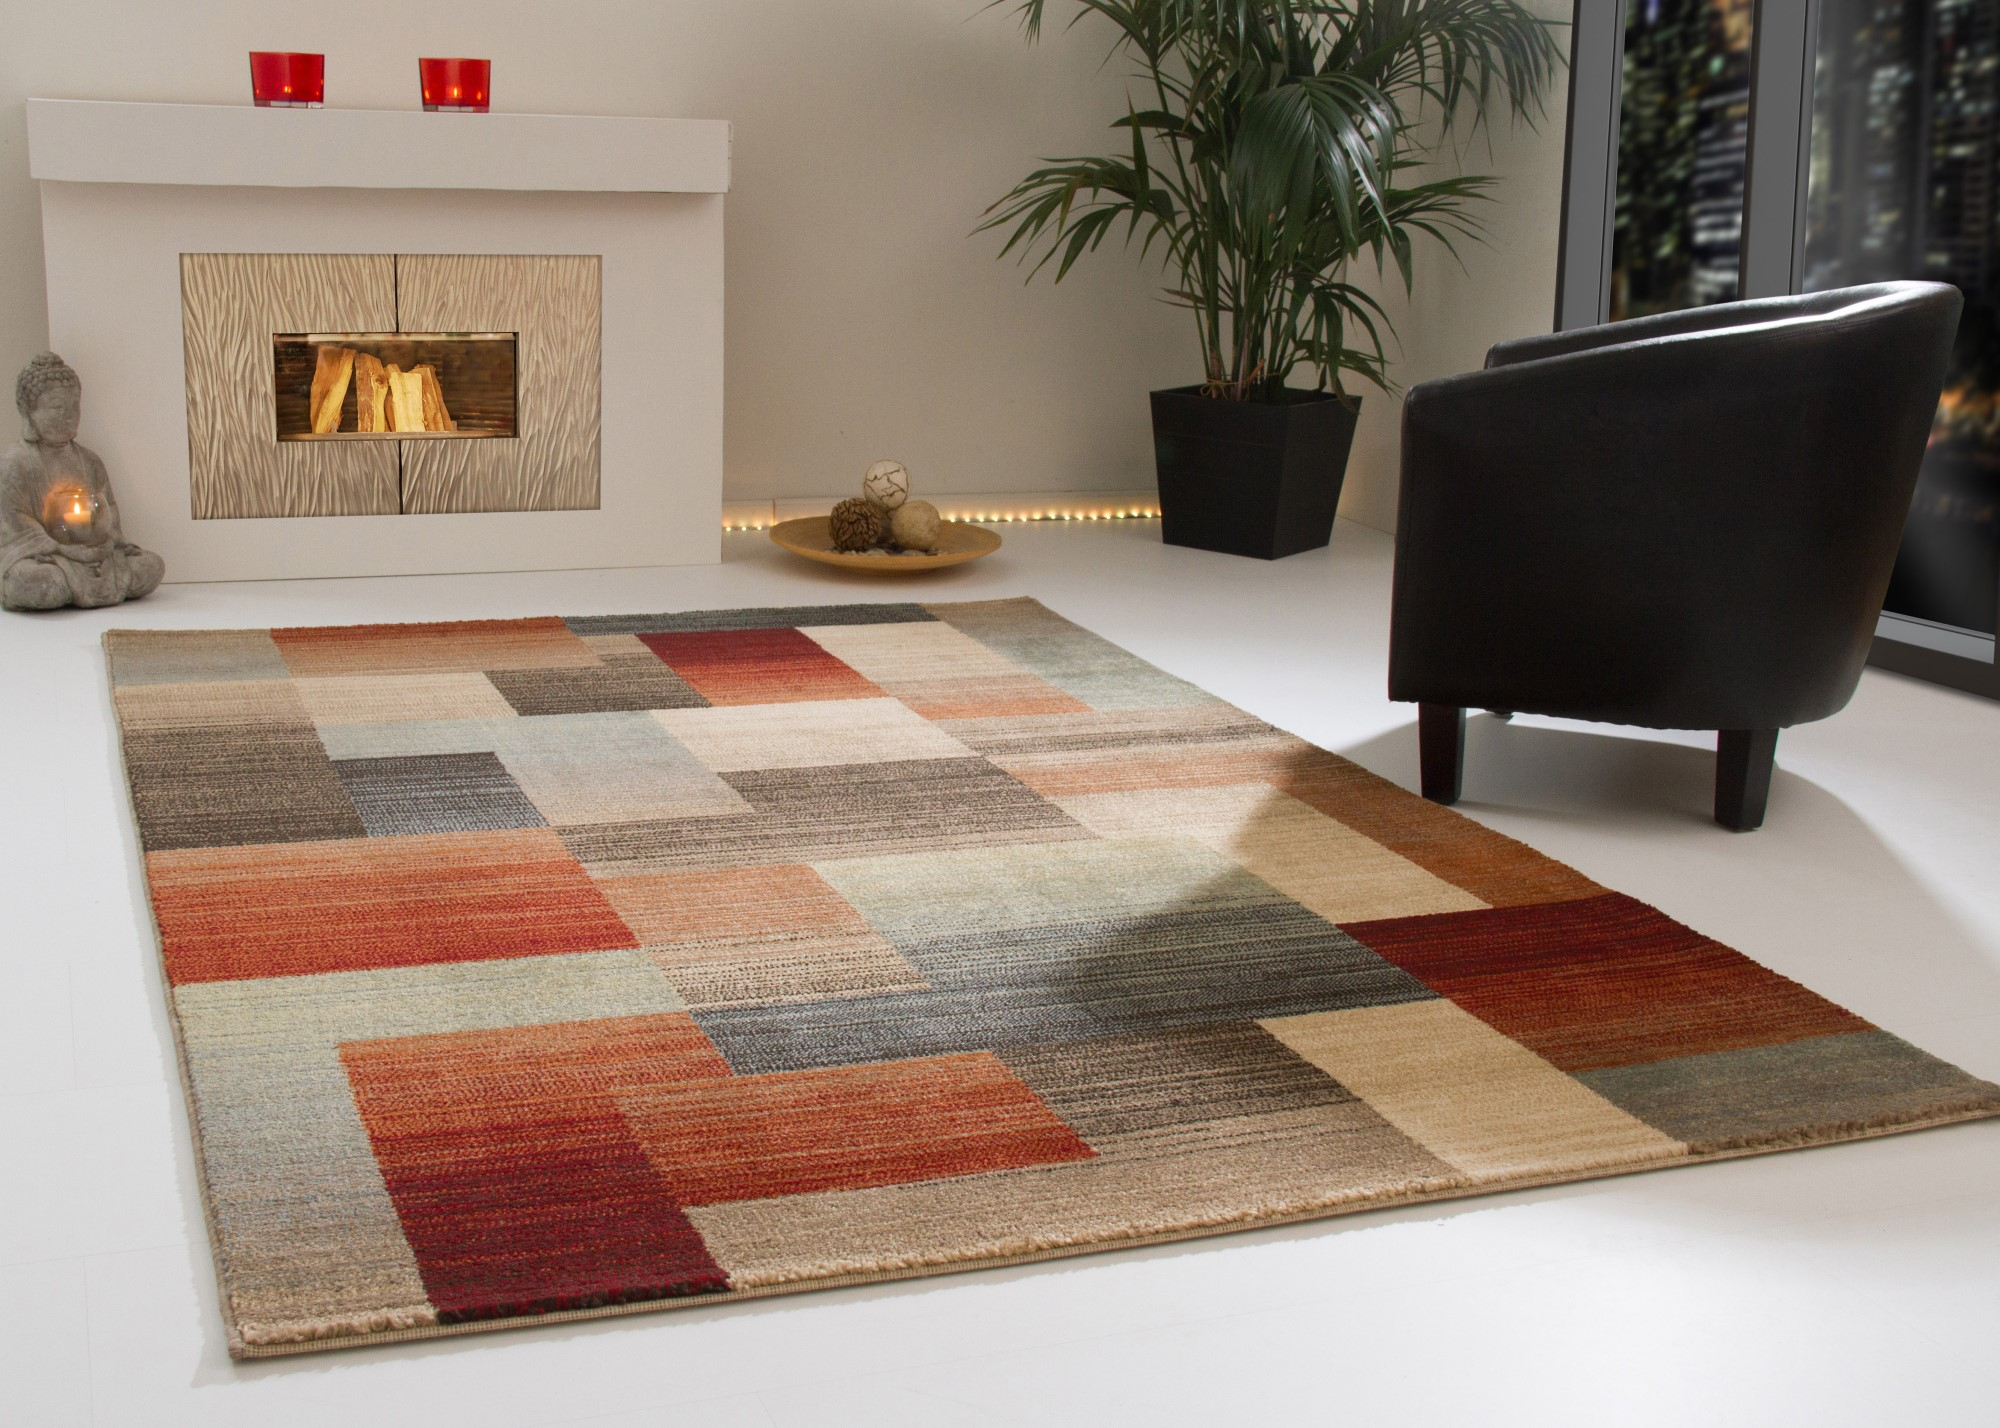 NEW MODERN RUG DERBY FIELDS SQUARES BROWN GREY RED COLOURFUL | eBay